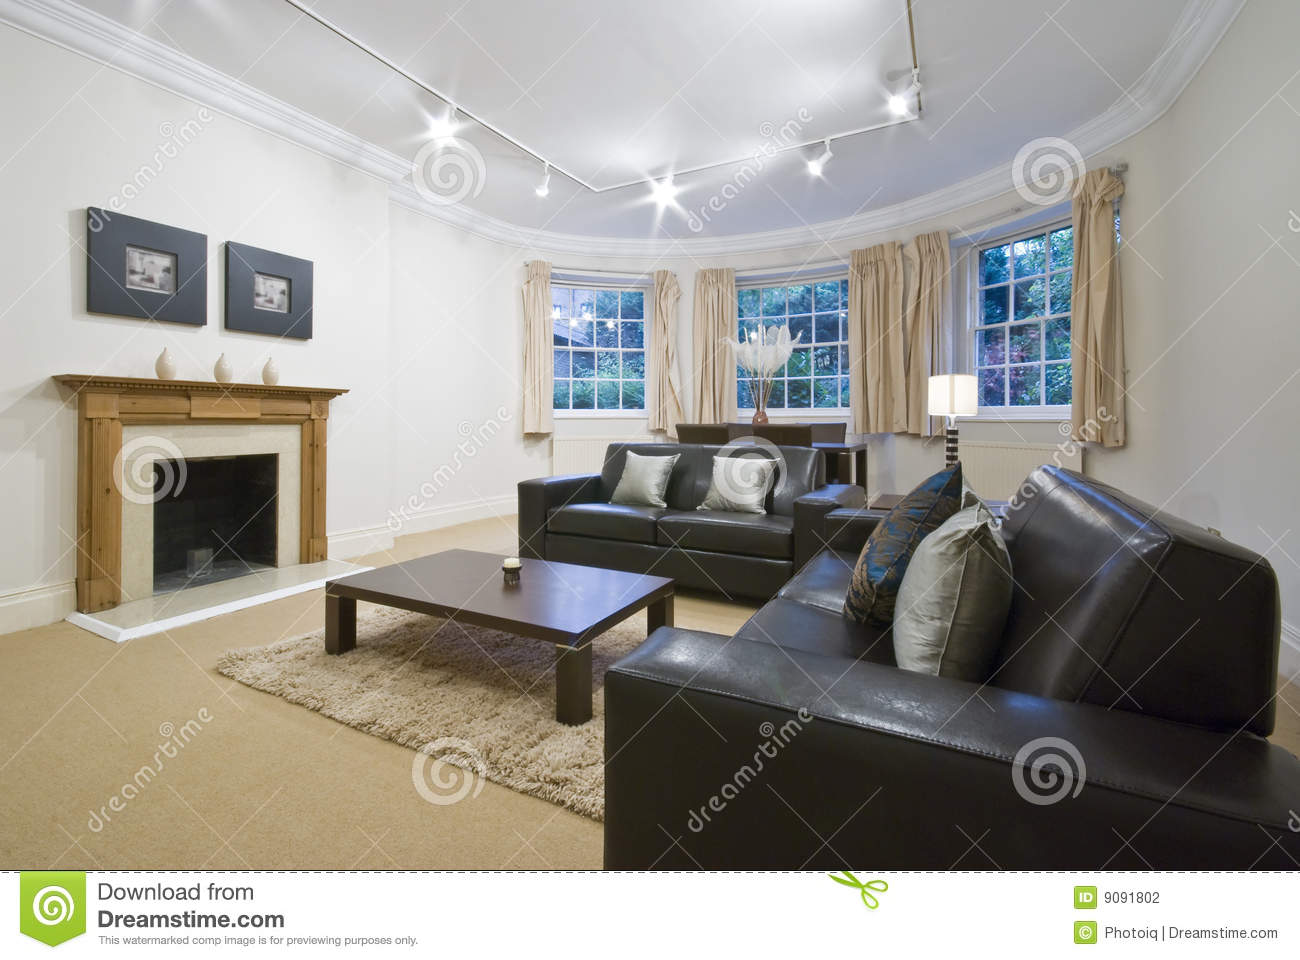 images of living rooms with dark brown leather furniture room rug ideas large bay window stock photography ...